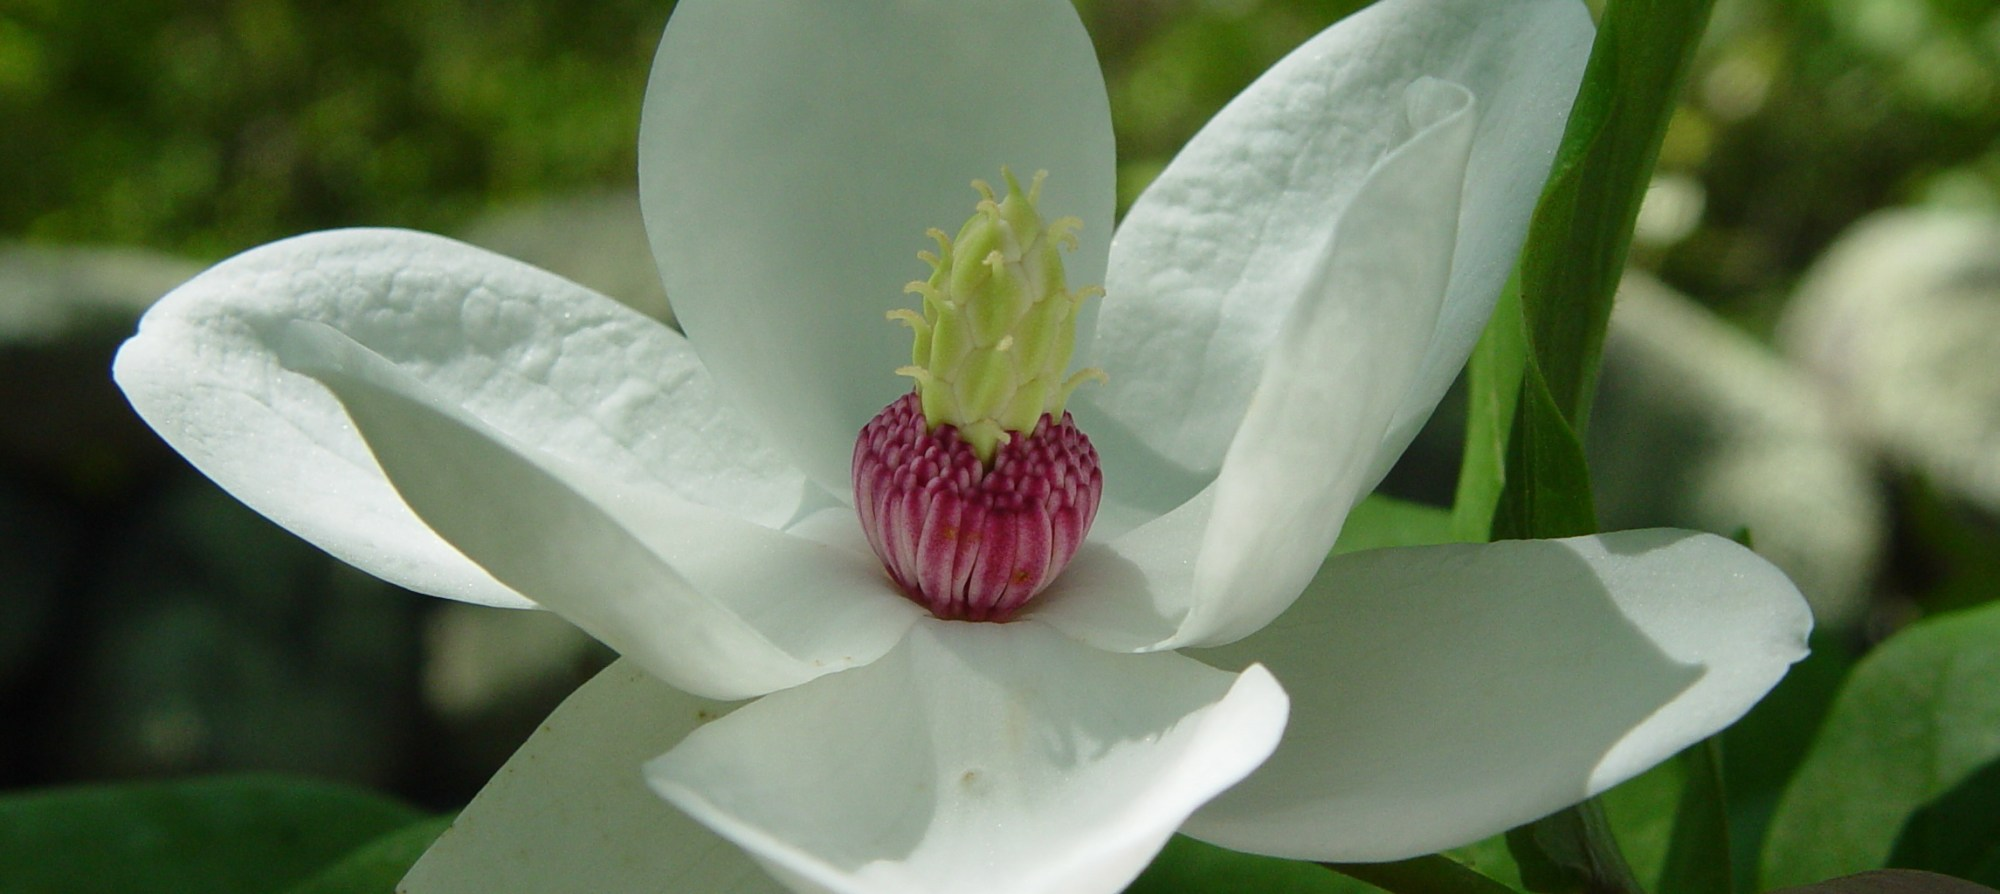 hight resolution of getting started with magnolias